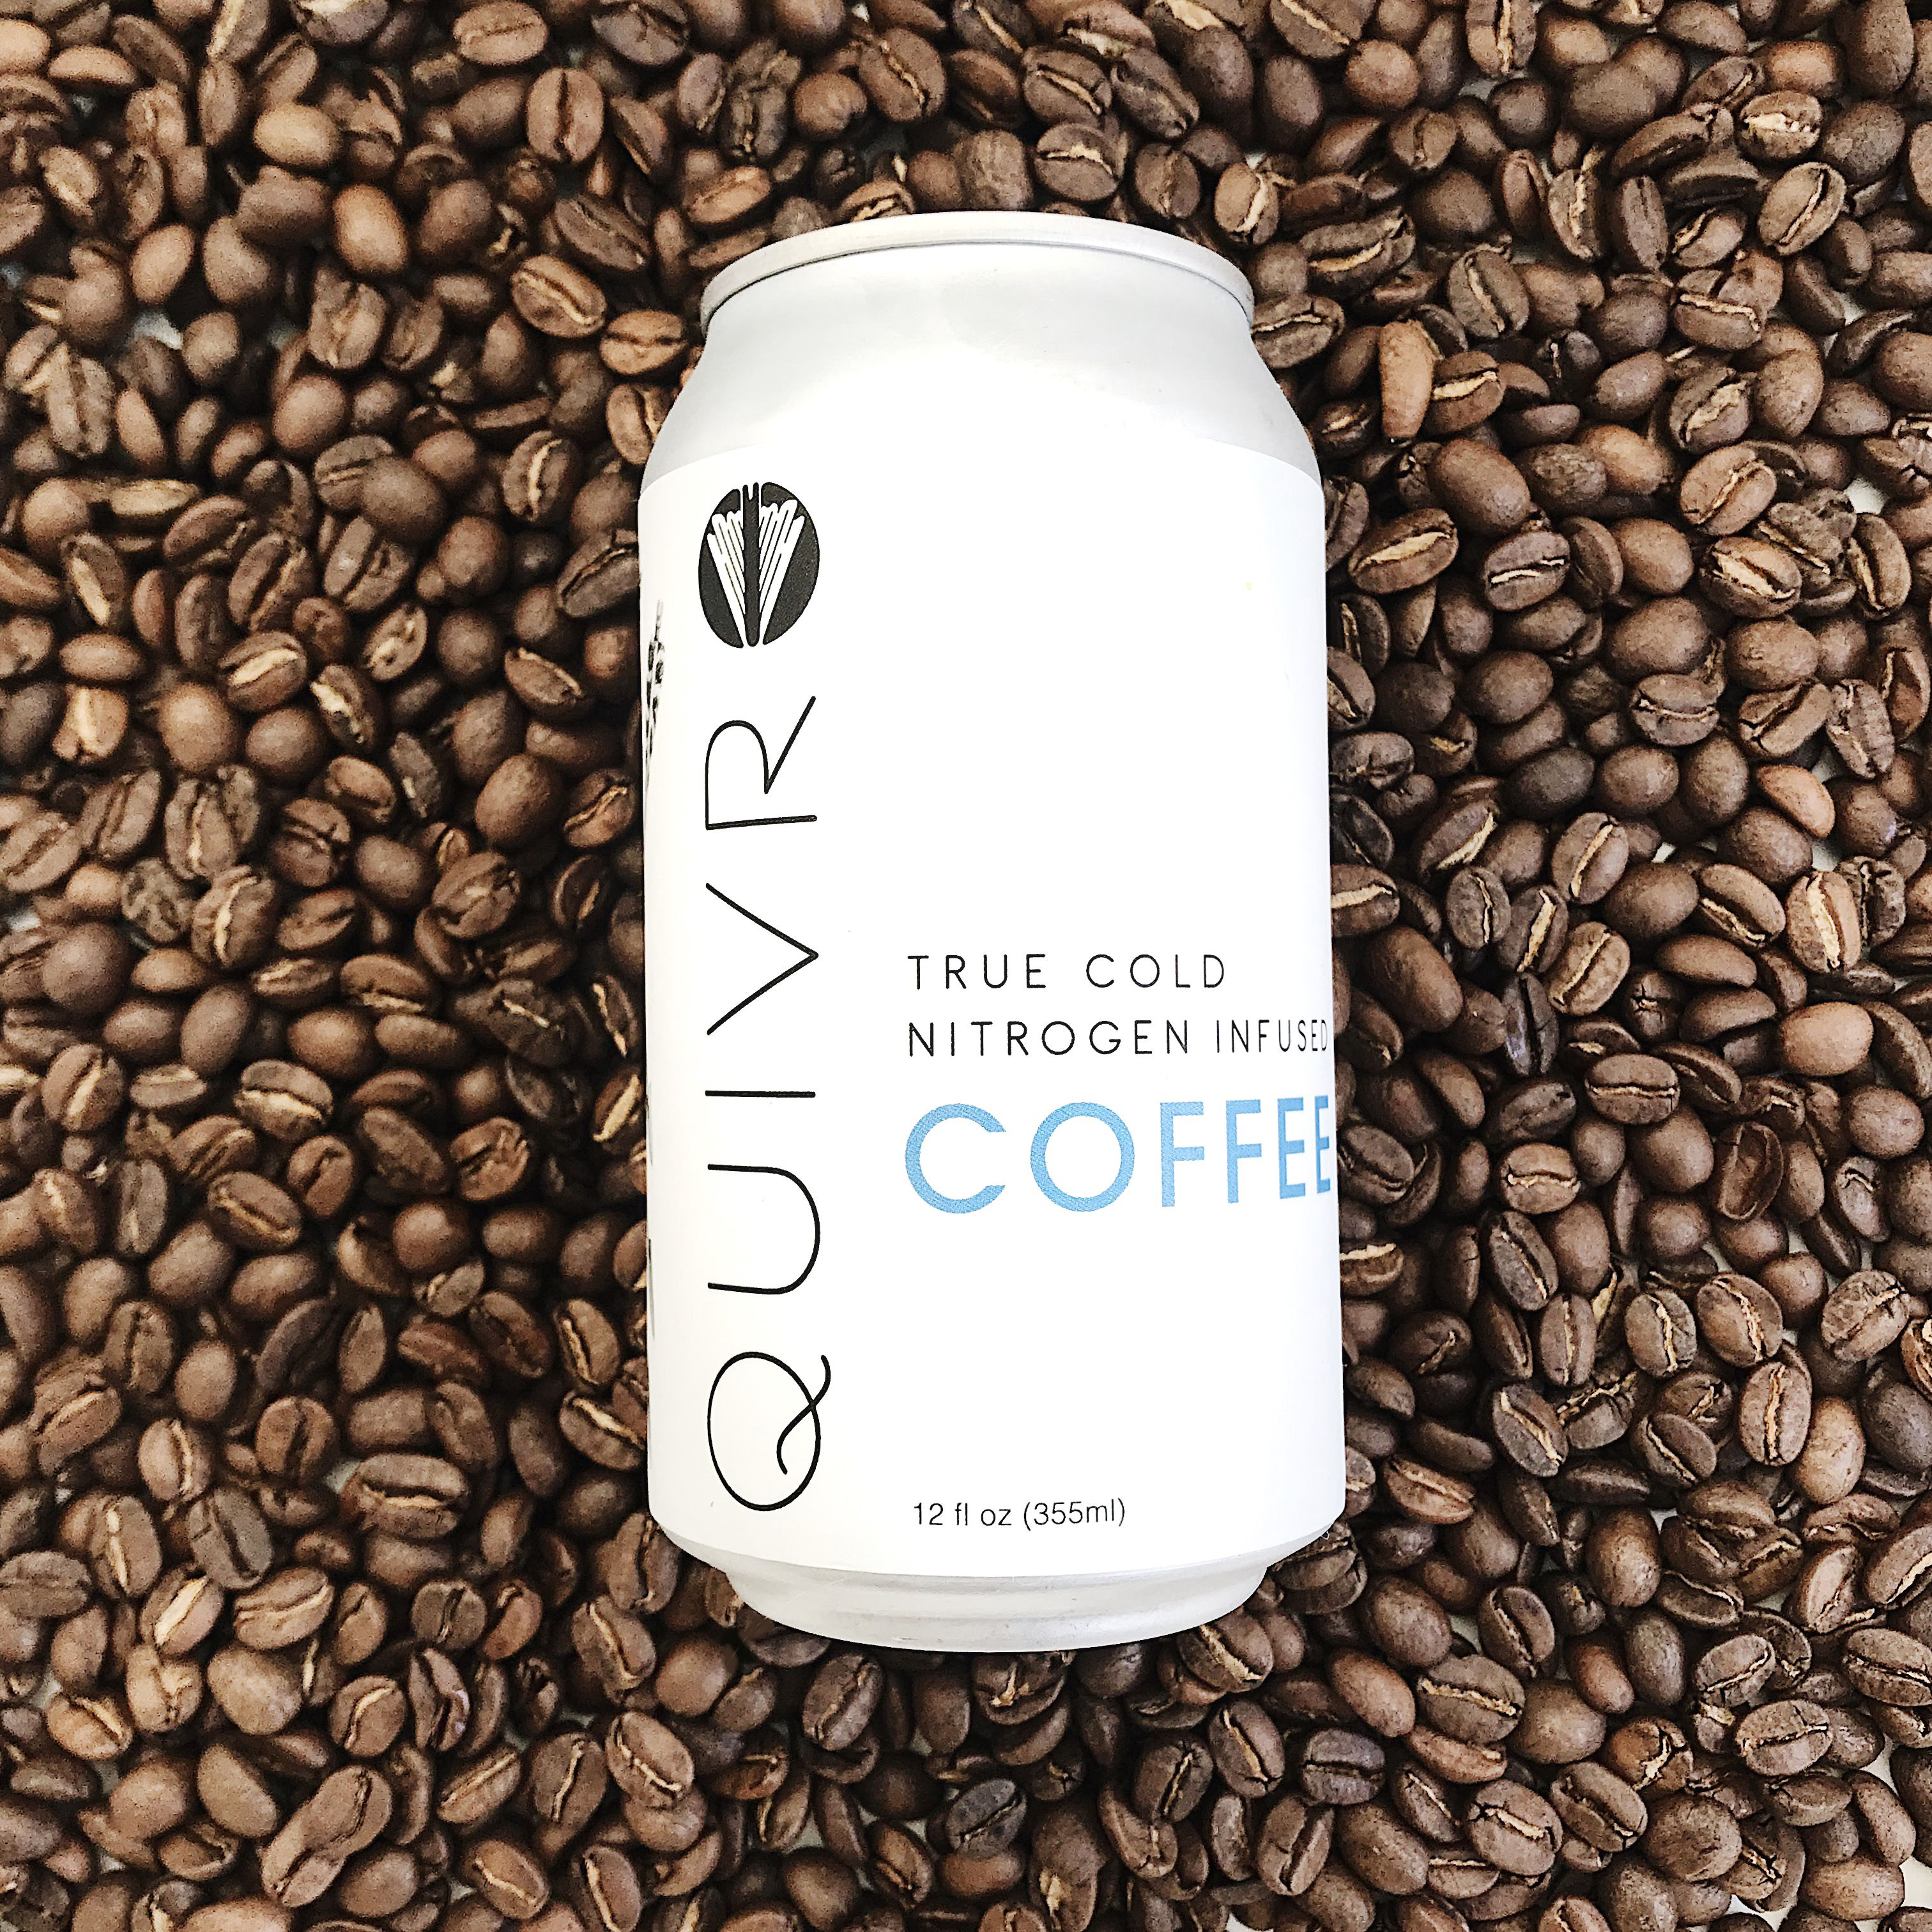 A can of Quivr coffee on a bed of coffee beans